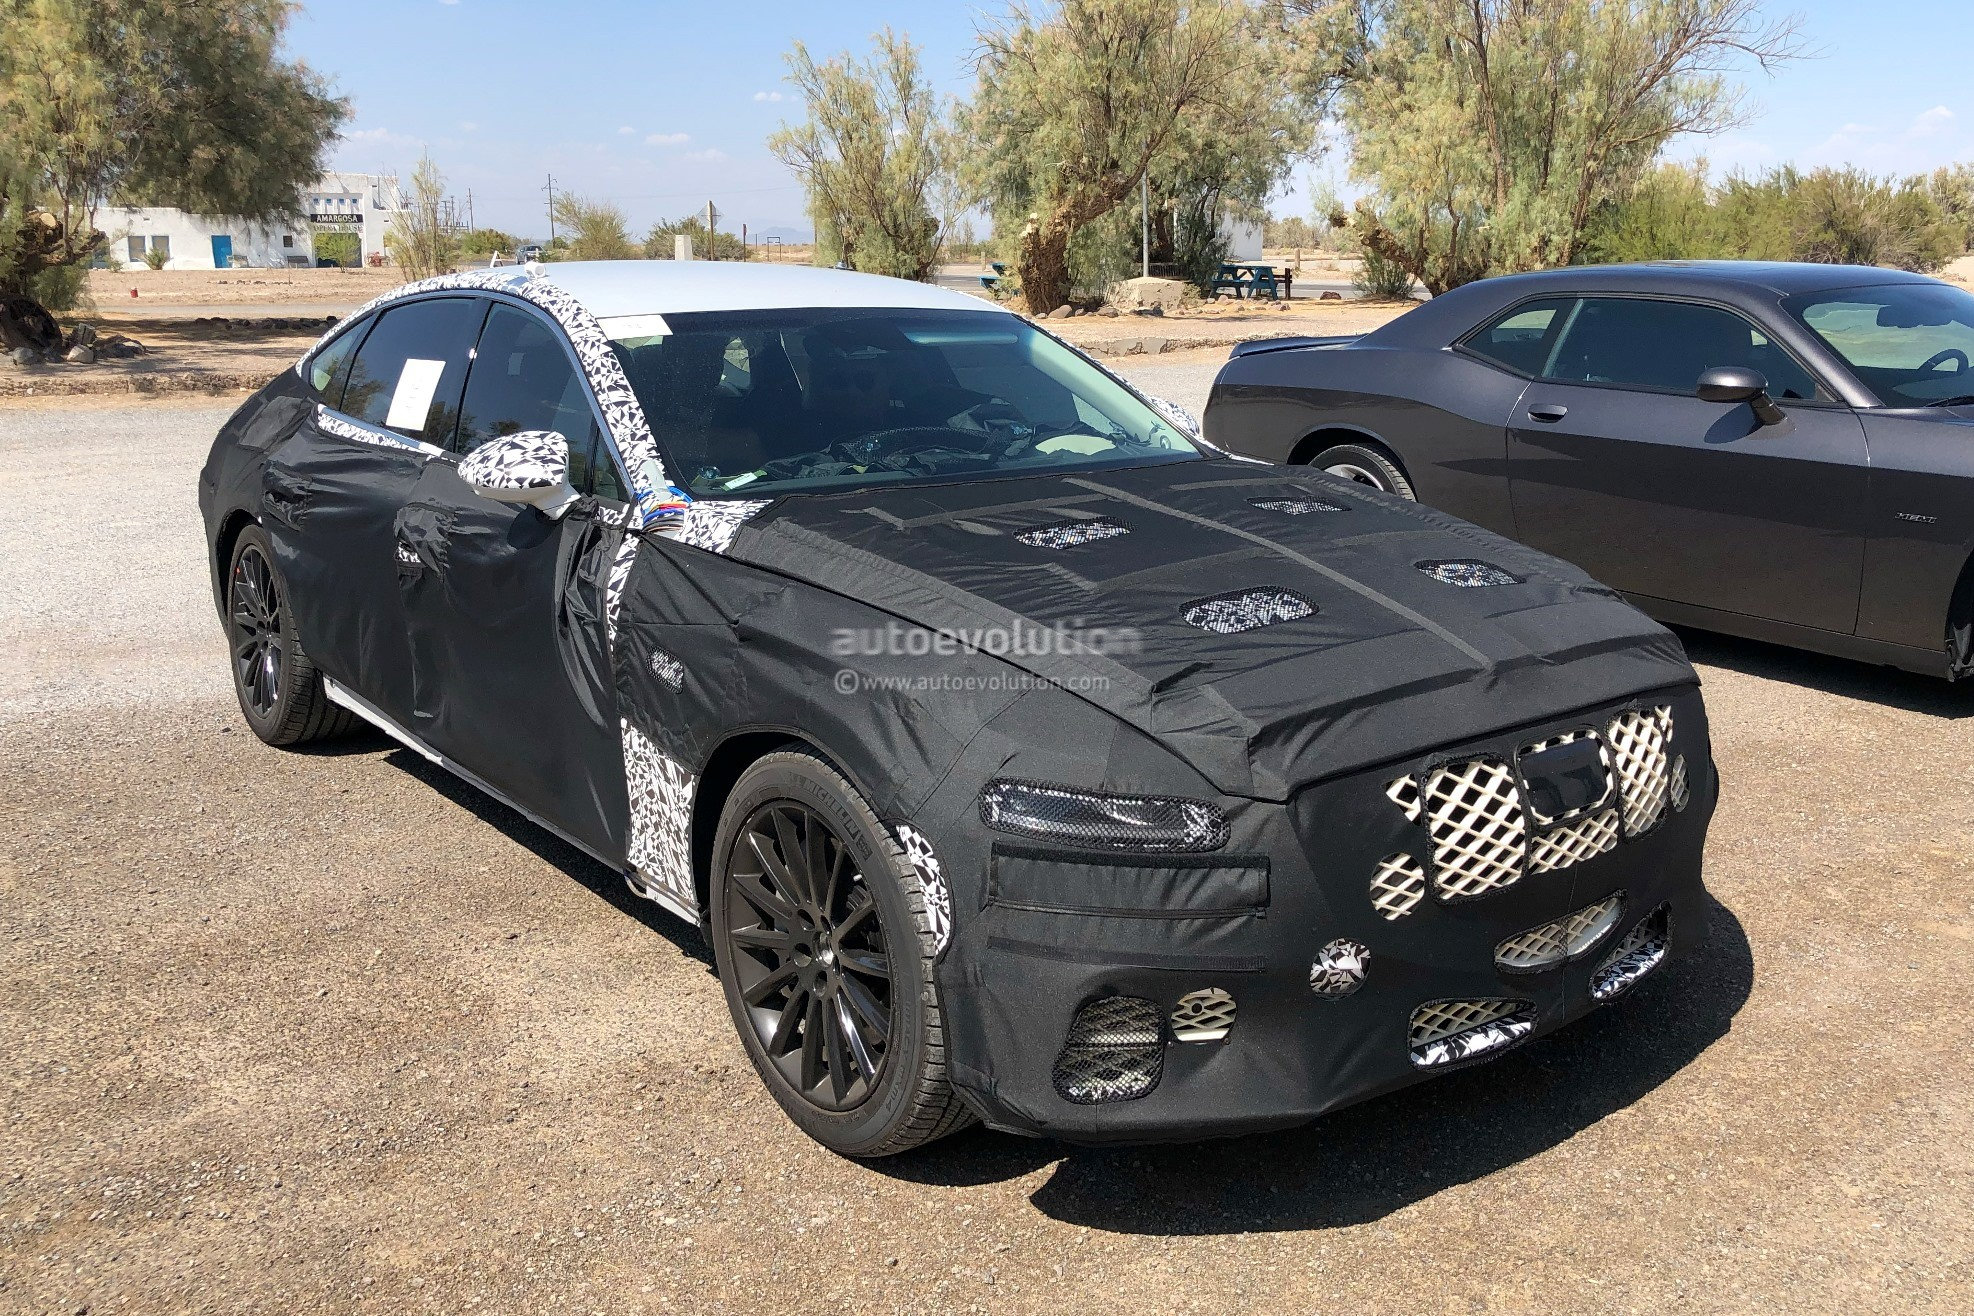 2020 Genesis G80 Spied With G70 Inspired Front Grille